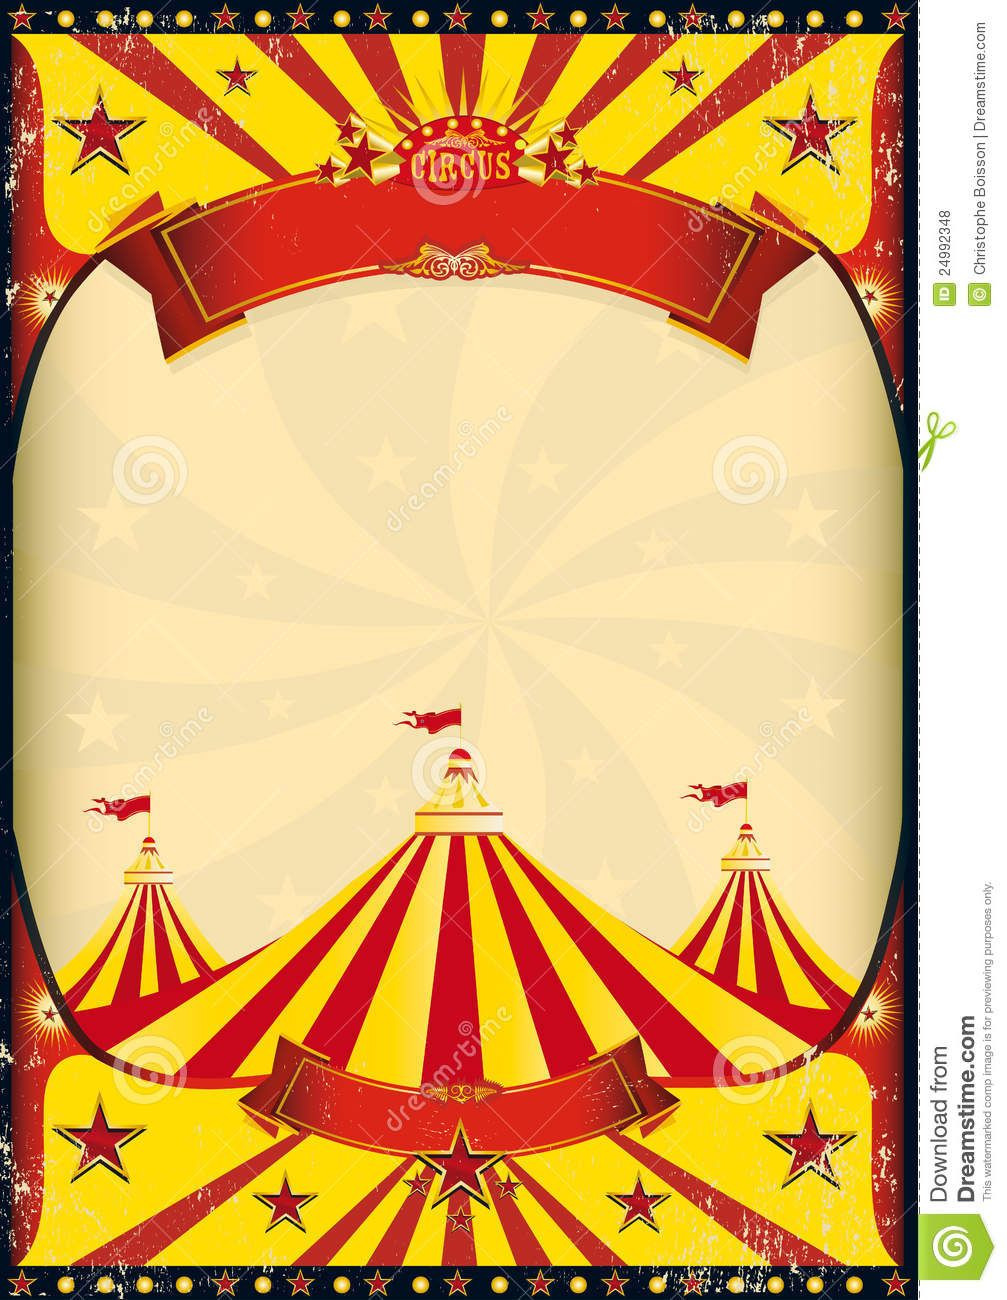 royalty free library Arcade clipart carnival tent.